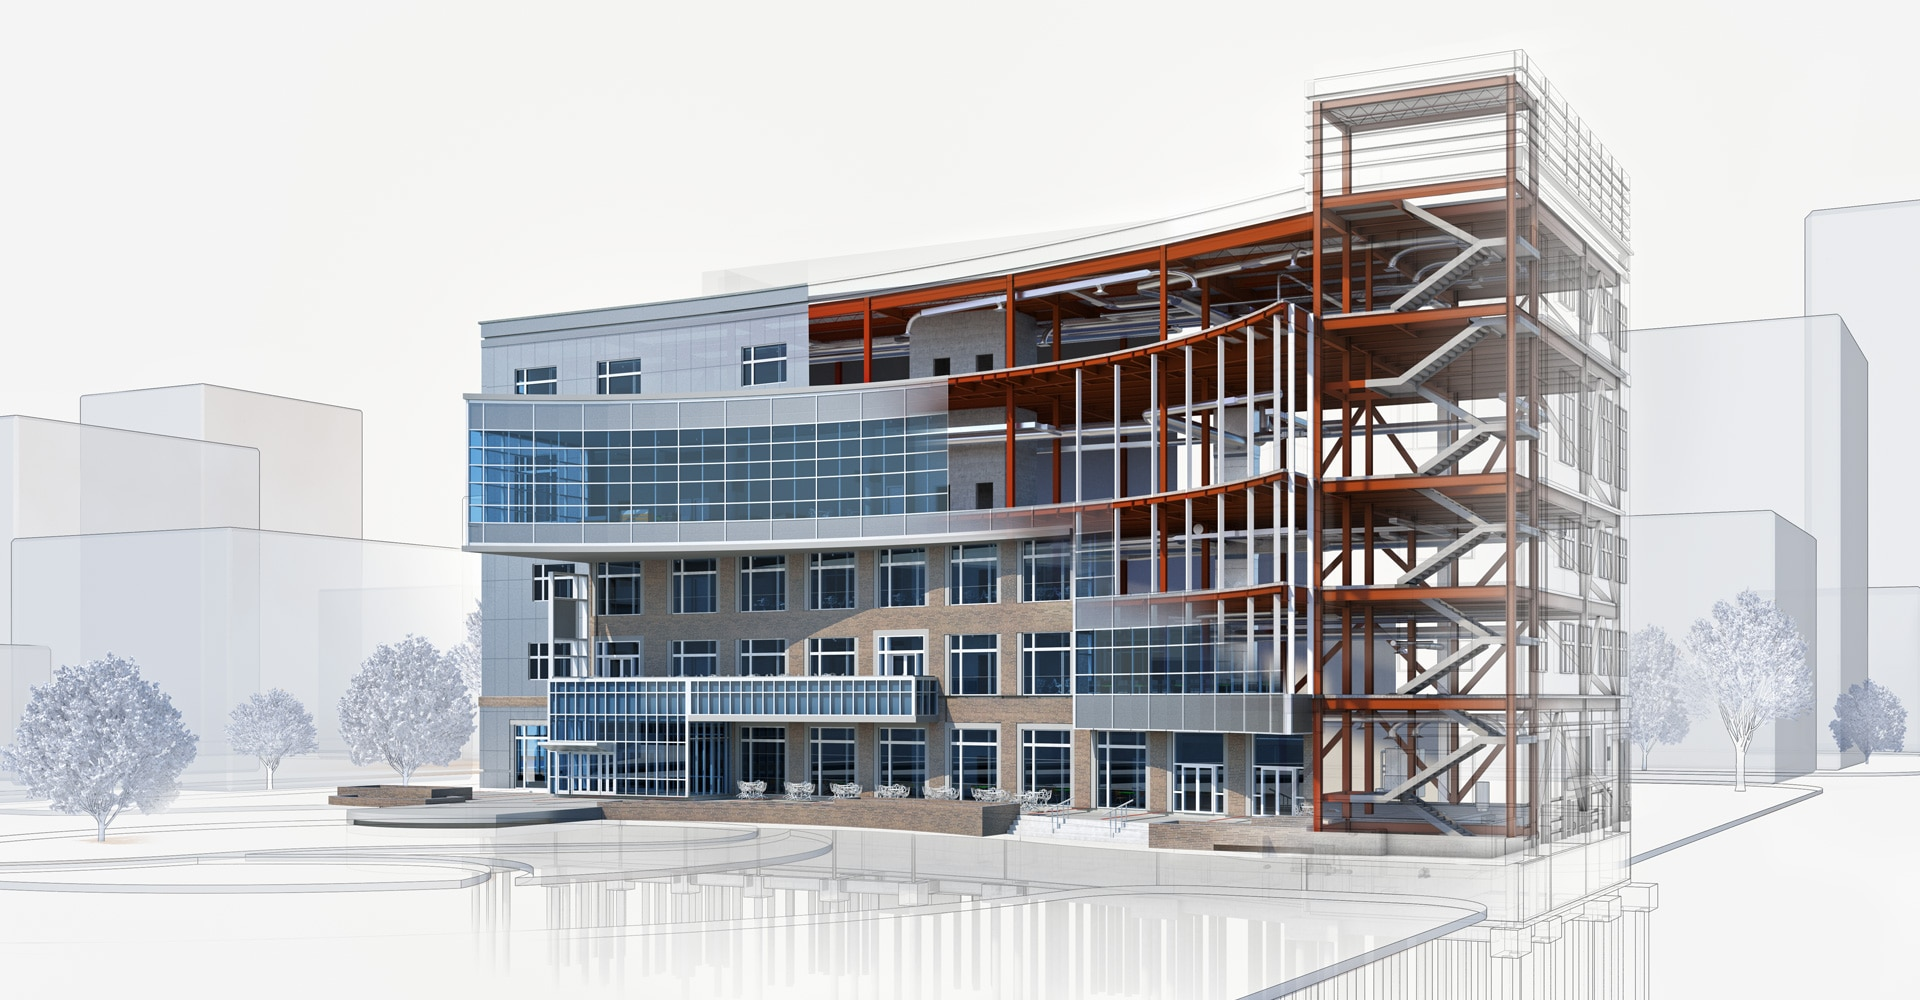 Bim software for mep engineering design autodesk for What type of engineer designs buildings